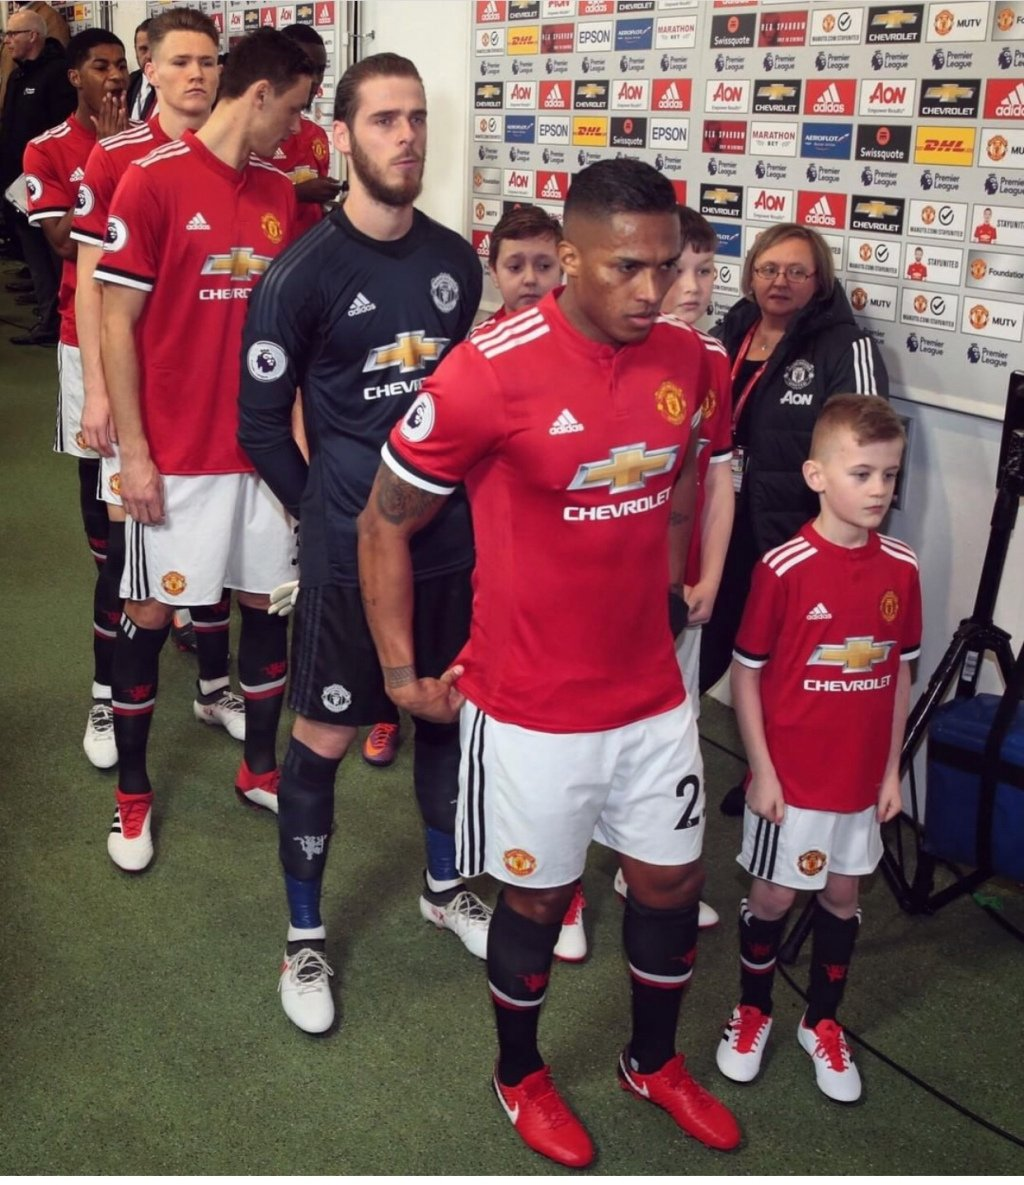 Wetin you fit expect as Manchester United wan face Brighton for FA Cup? manutdinpidgin.com/2018/03/17/wet…